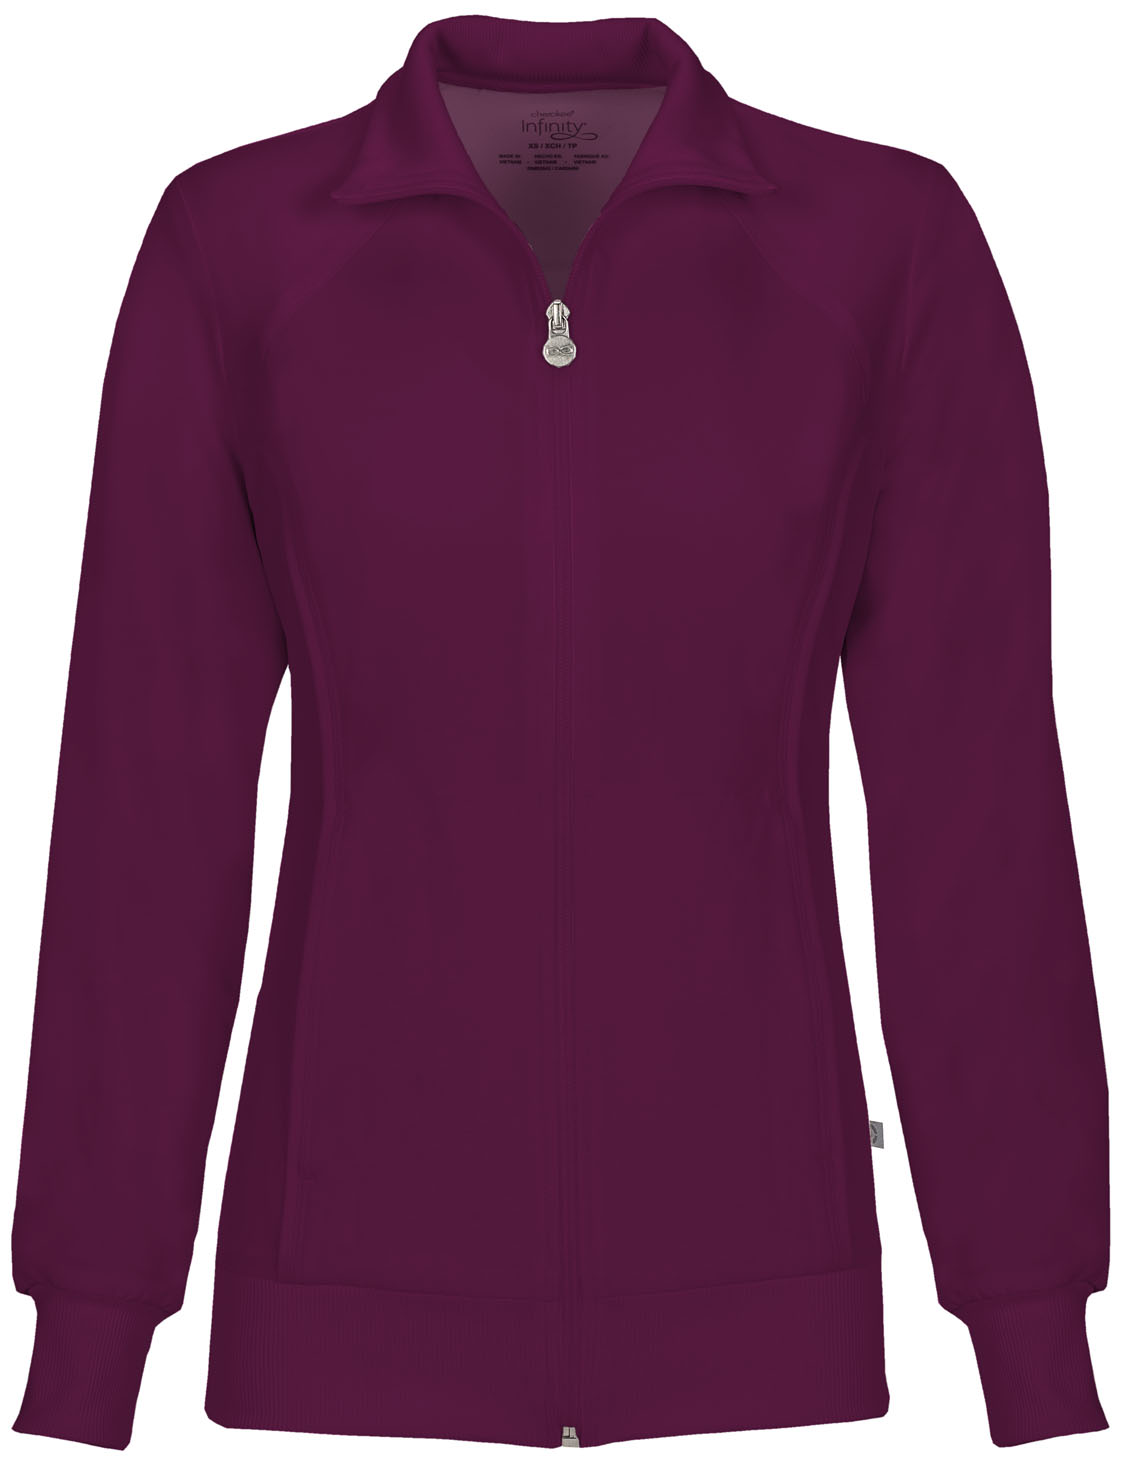 a3085cd78da Infinity Zip Front Warm-Up Jacket in Wine 2391A-WNPS from Cherokee ...